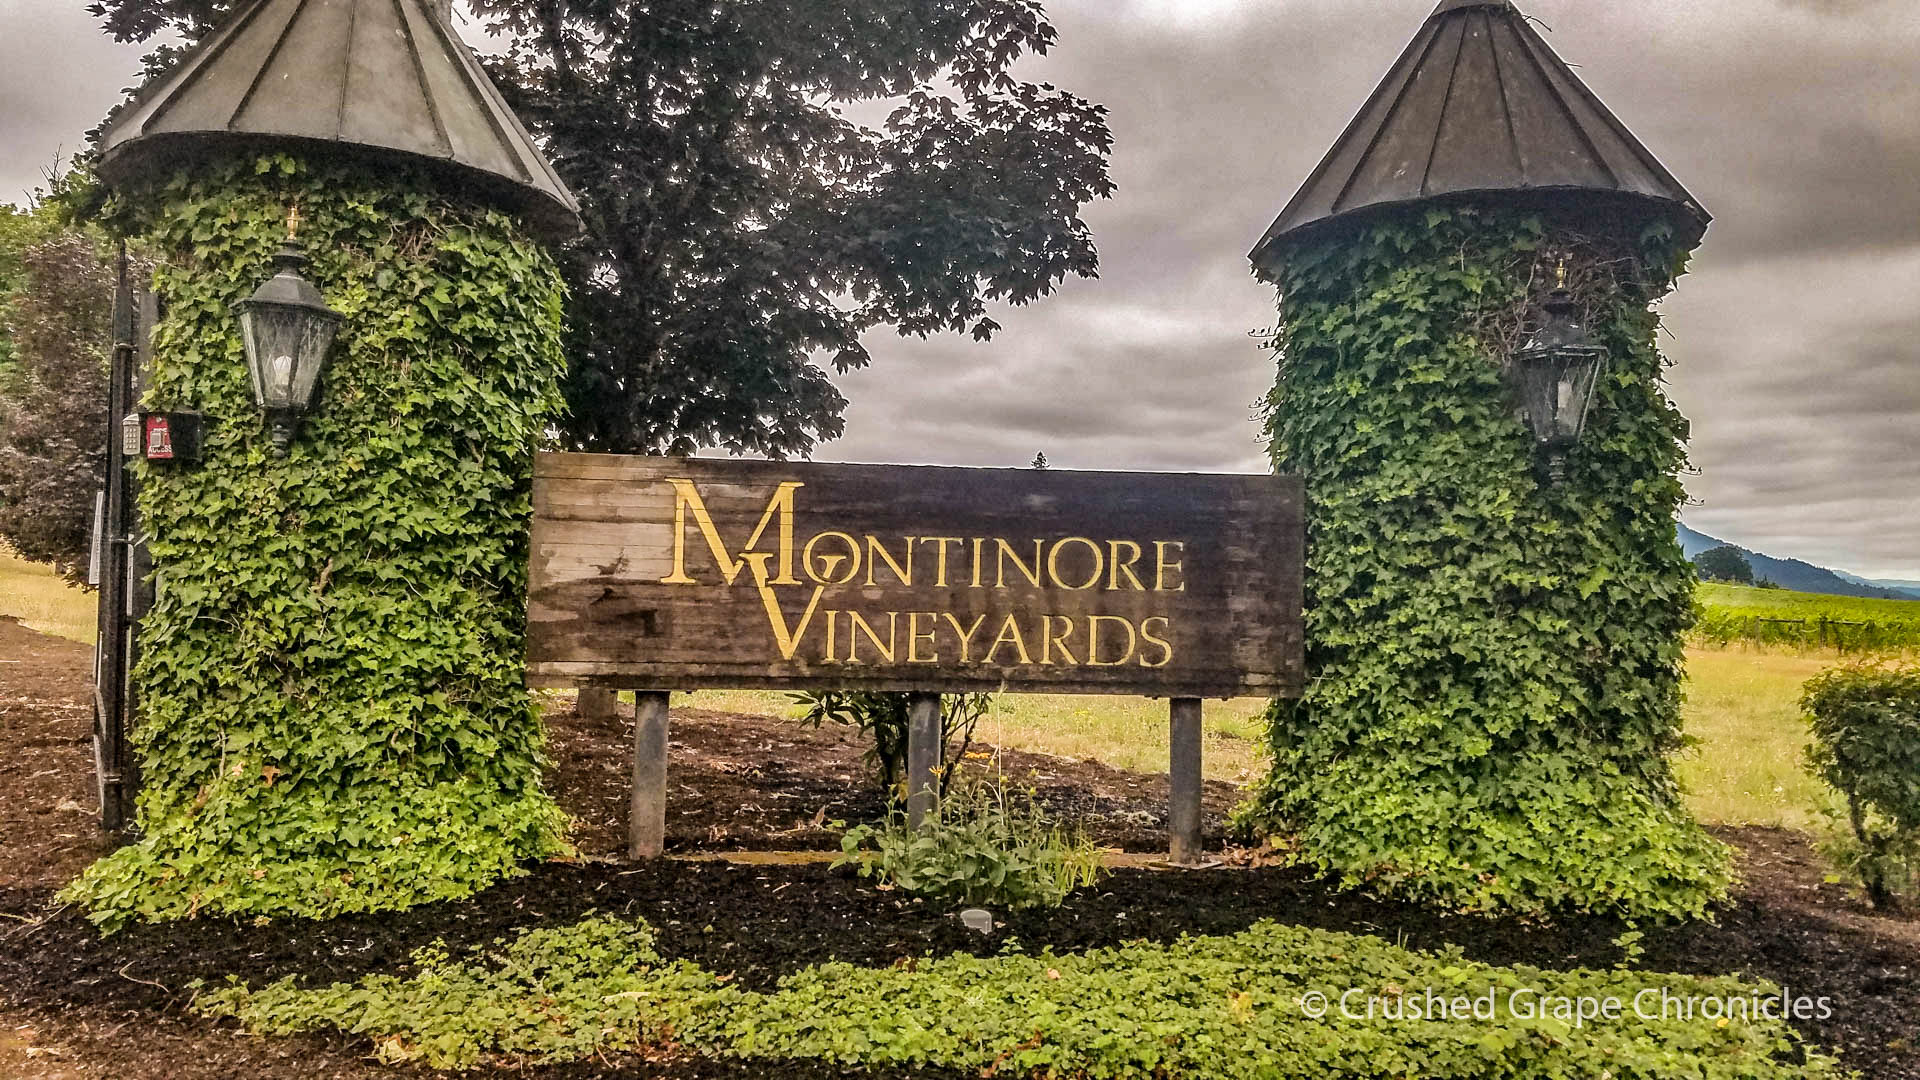 Montinore Vineyards Entrance